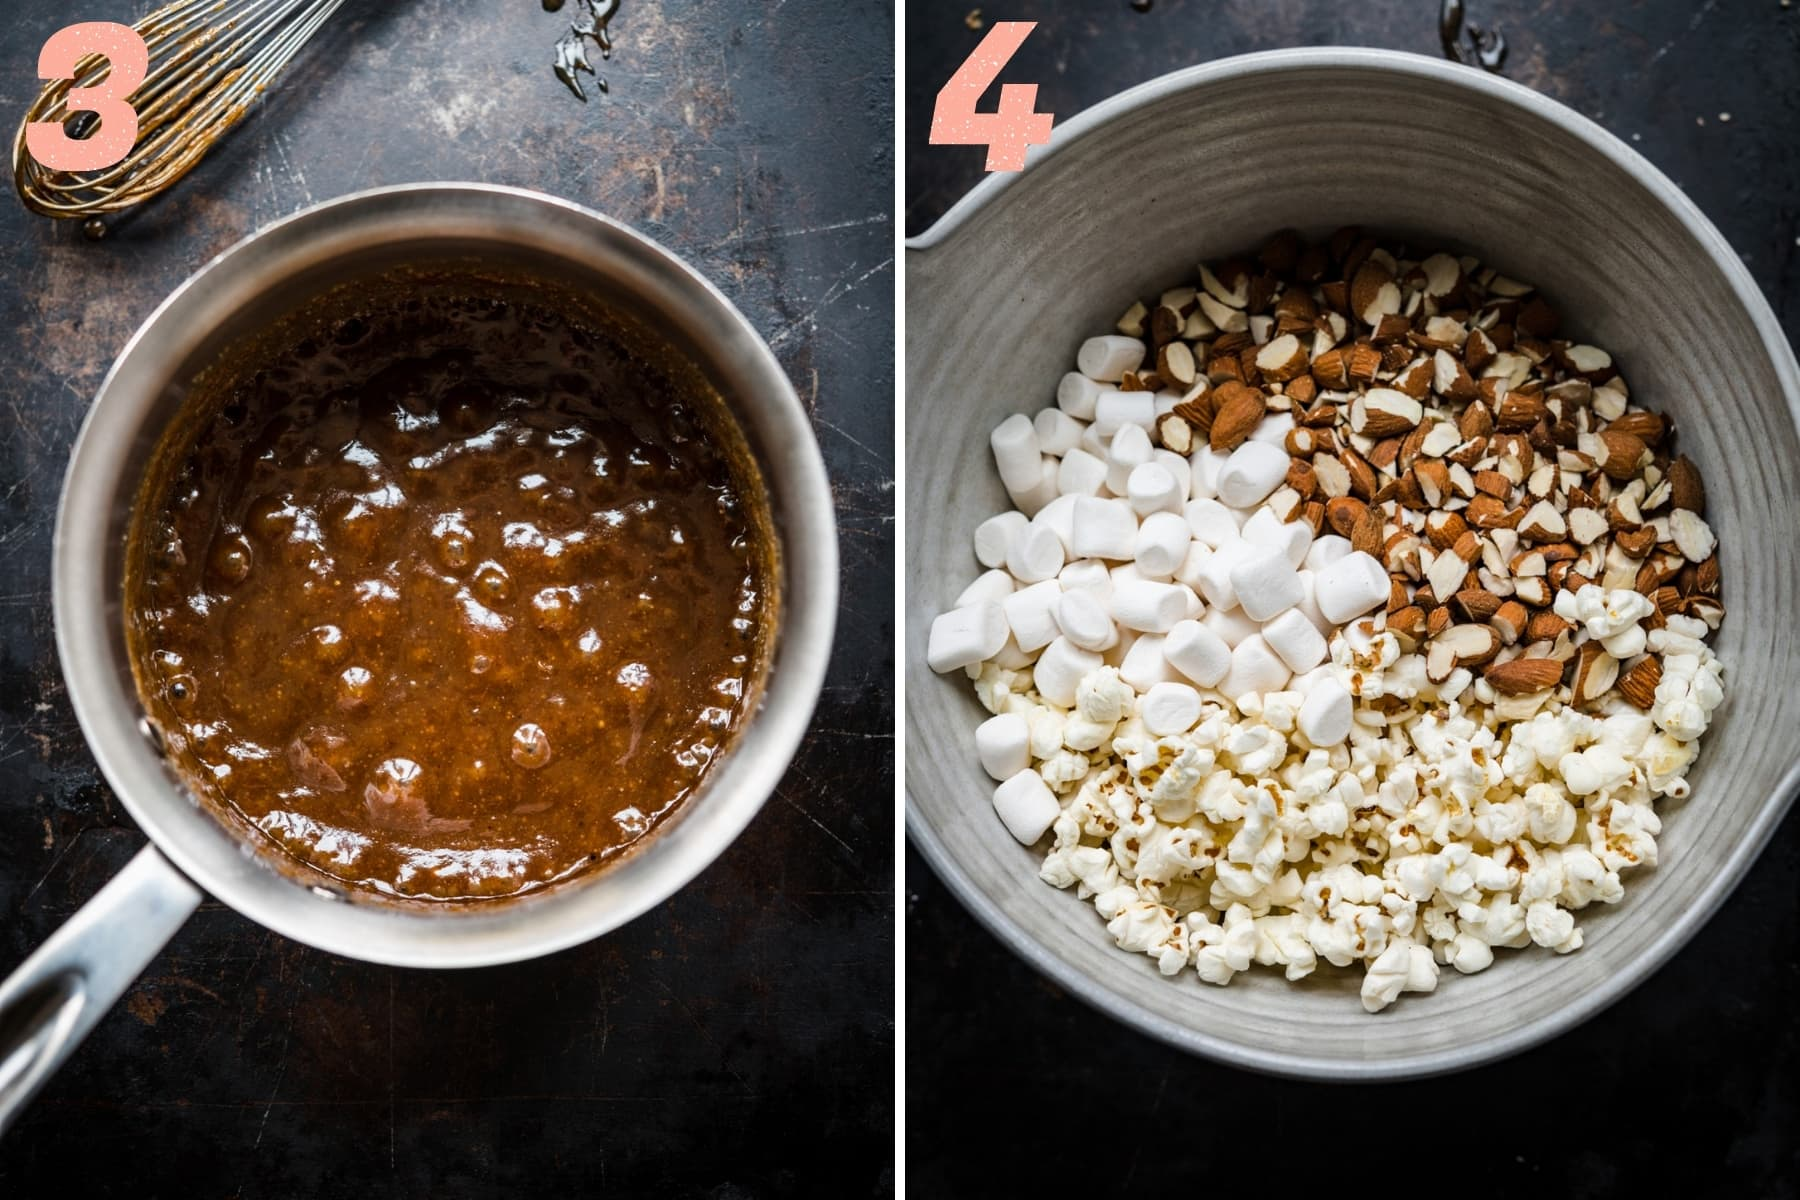 on the left: vegan caramel sauce bubbling in saucepan. on the right: marshmallows, almonds and popcorn in mixing bowl.